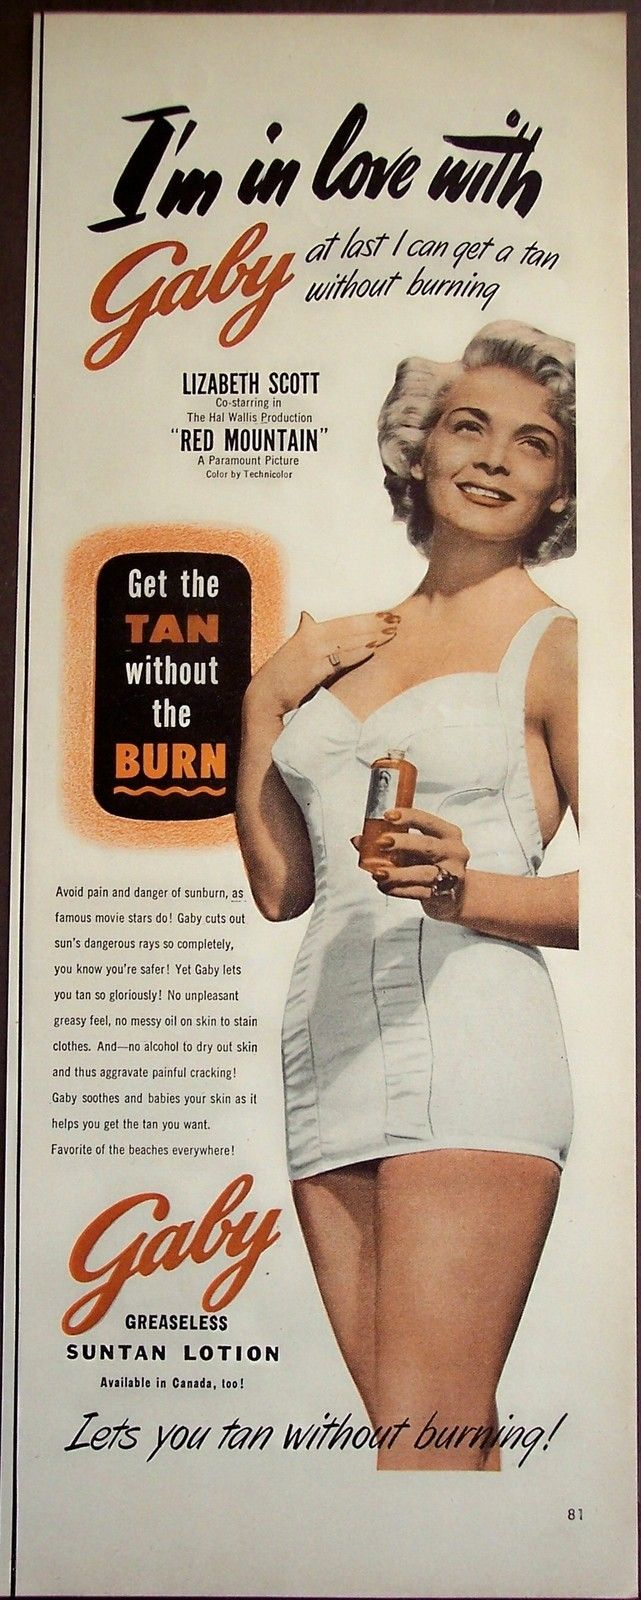 original 1951 vintage beauty Ad Gaby Suntan Lotion actress Lizabeth Scott